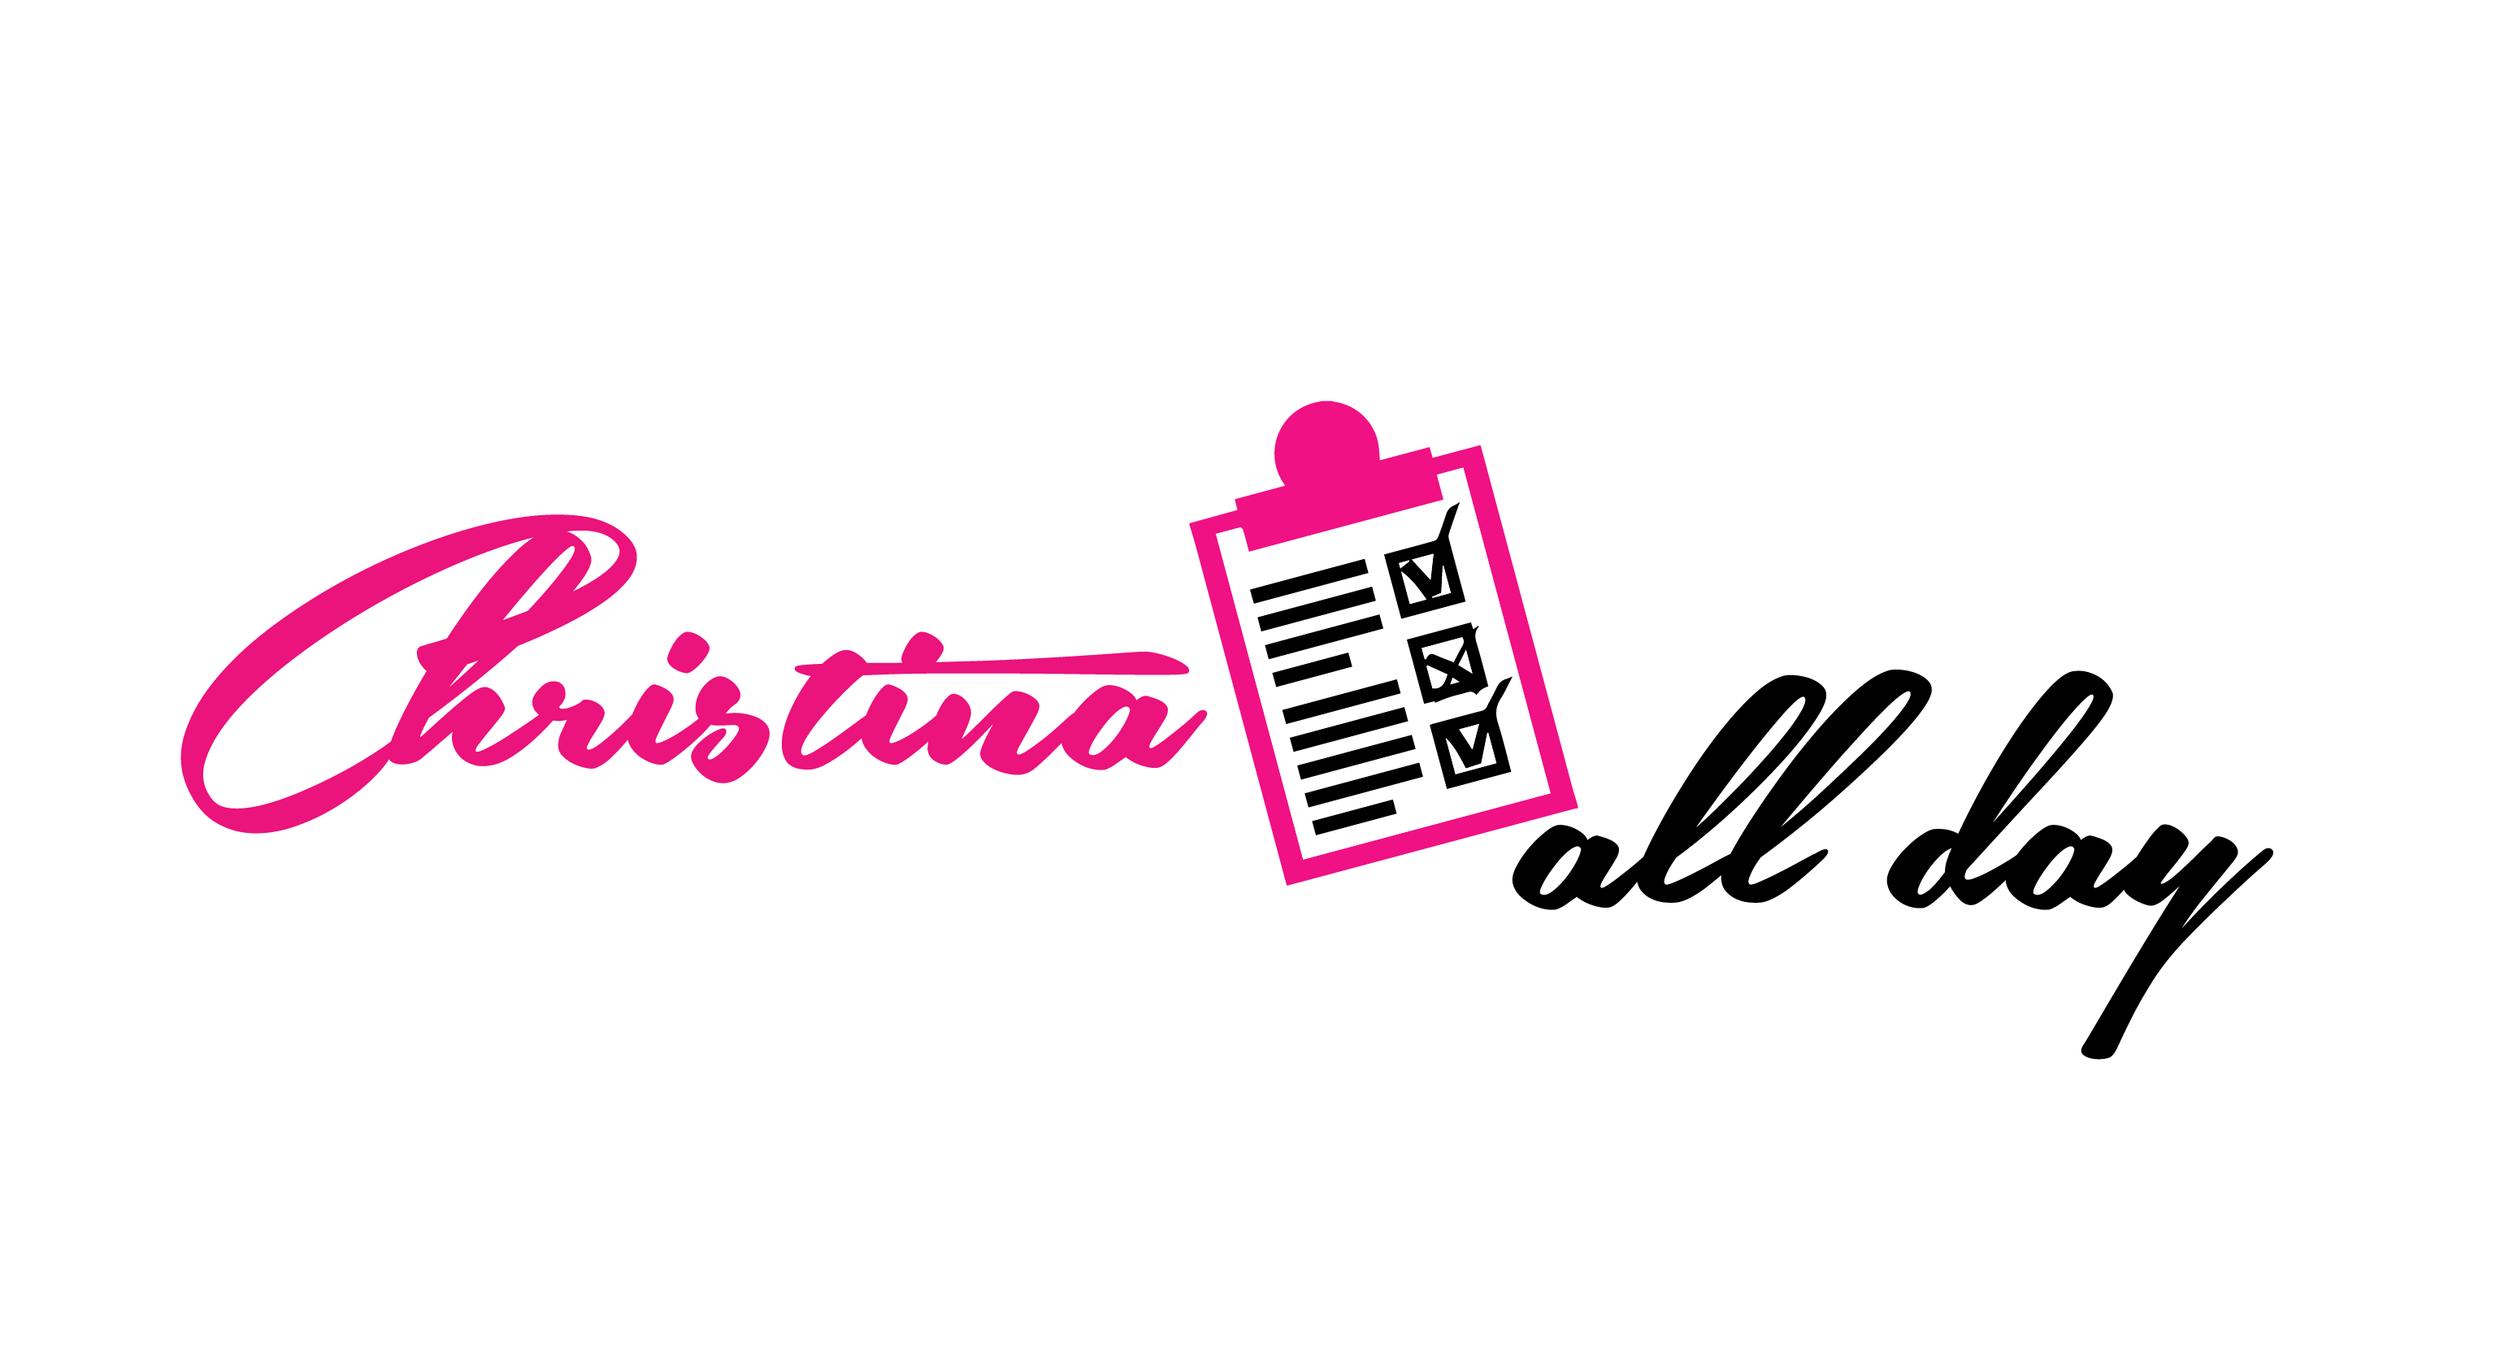 Christina-All-Day-logo-with-the-pad-and-checkmark.png